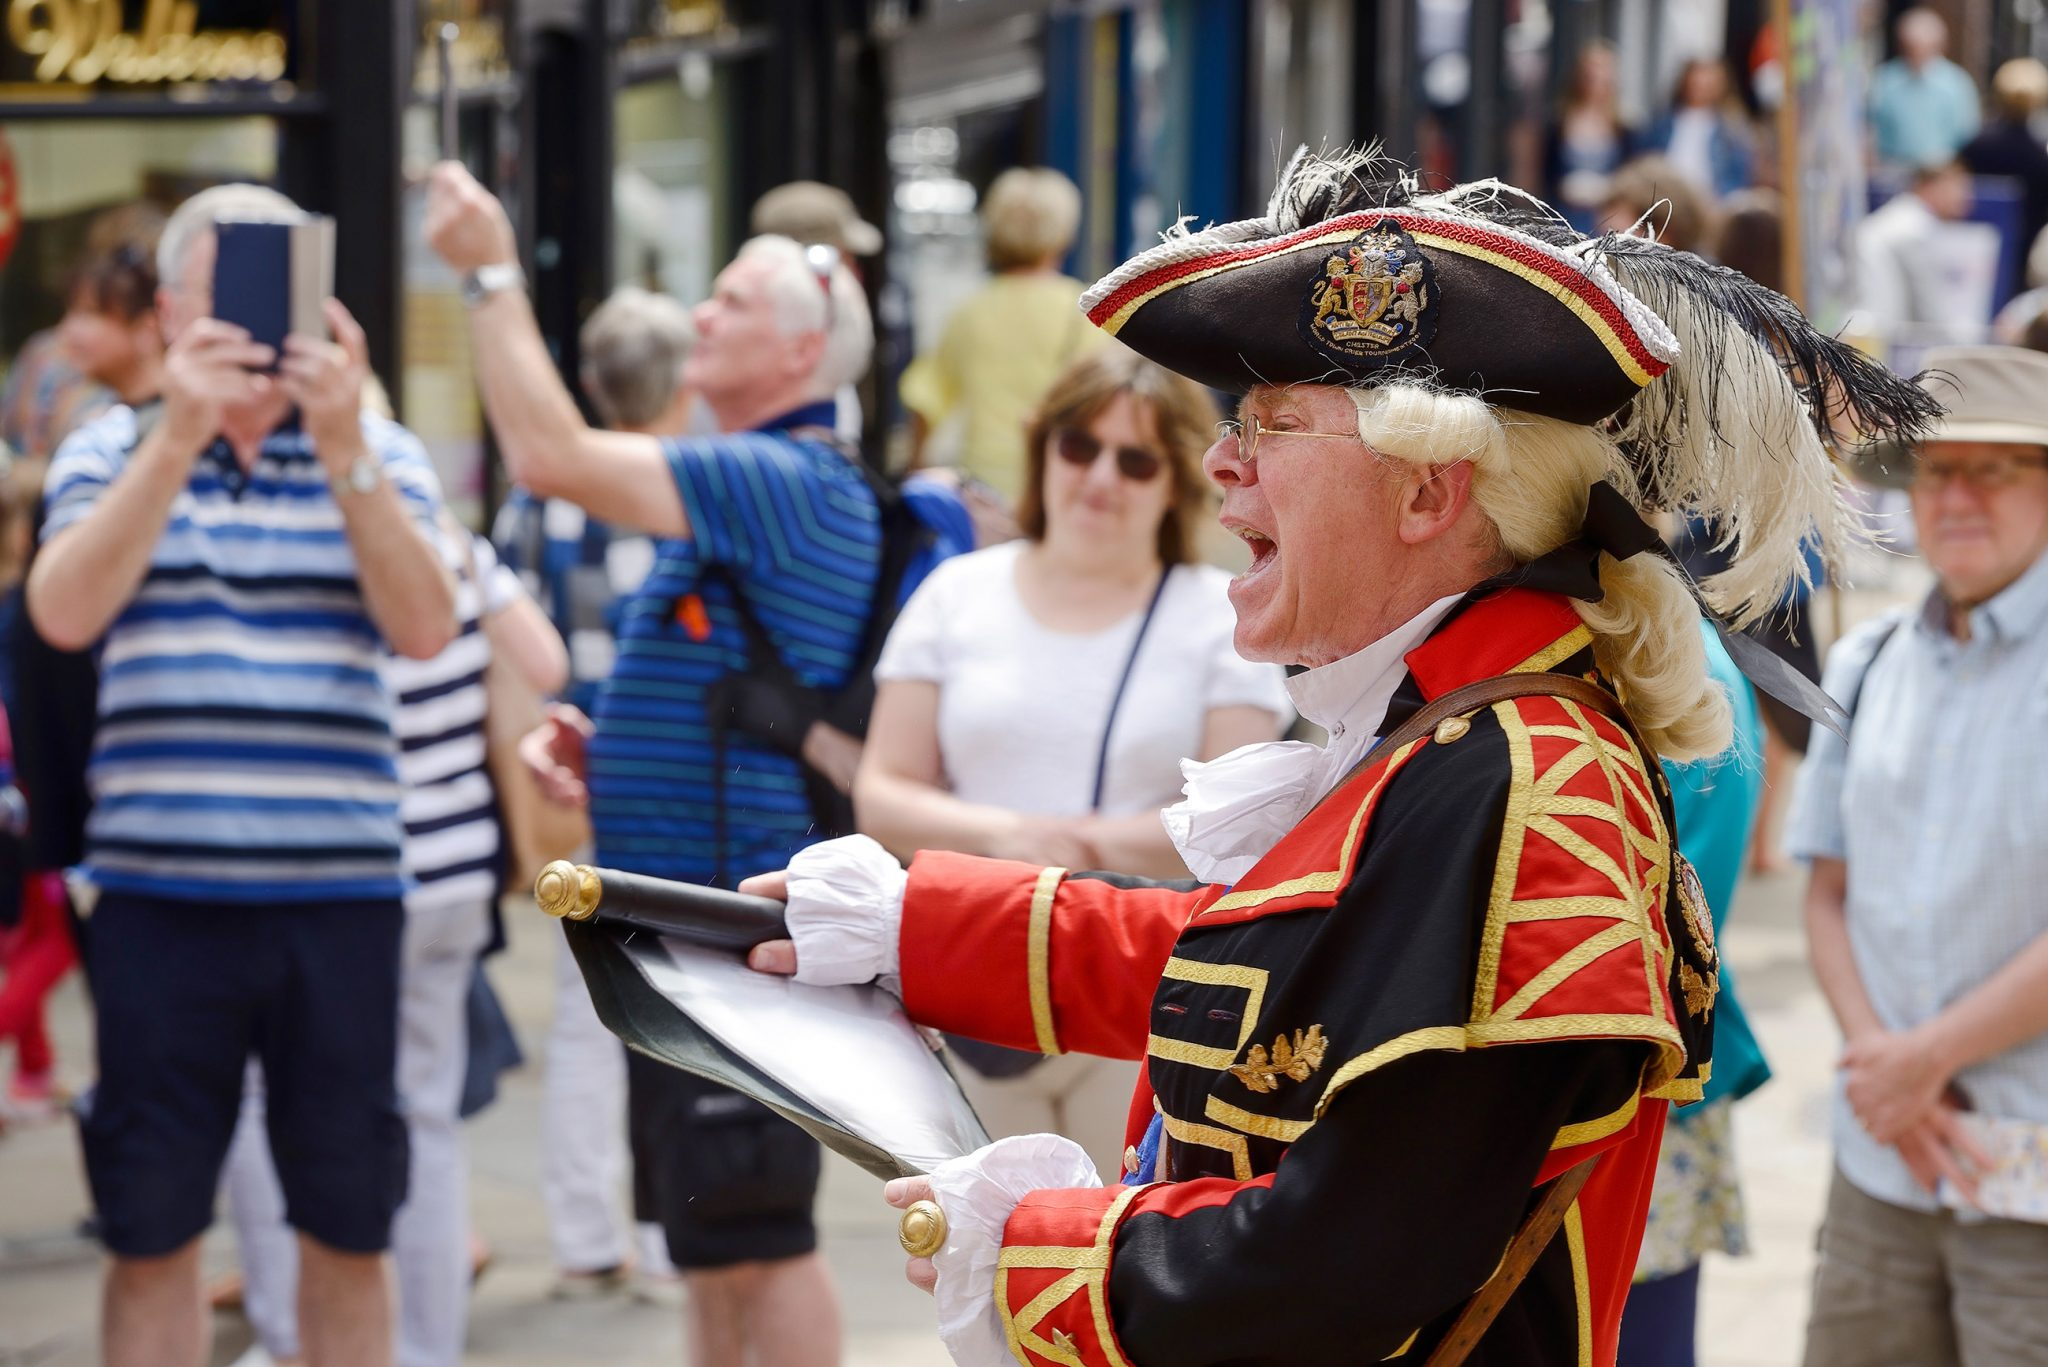 The Town Crier making middday proclamations at The Cross, Chester, UK